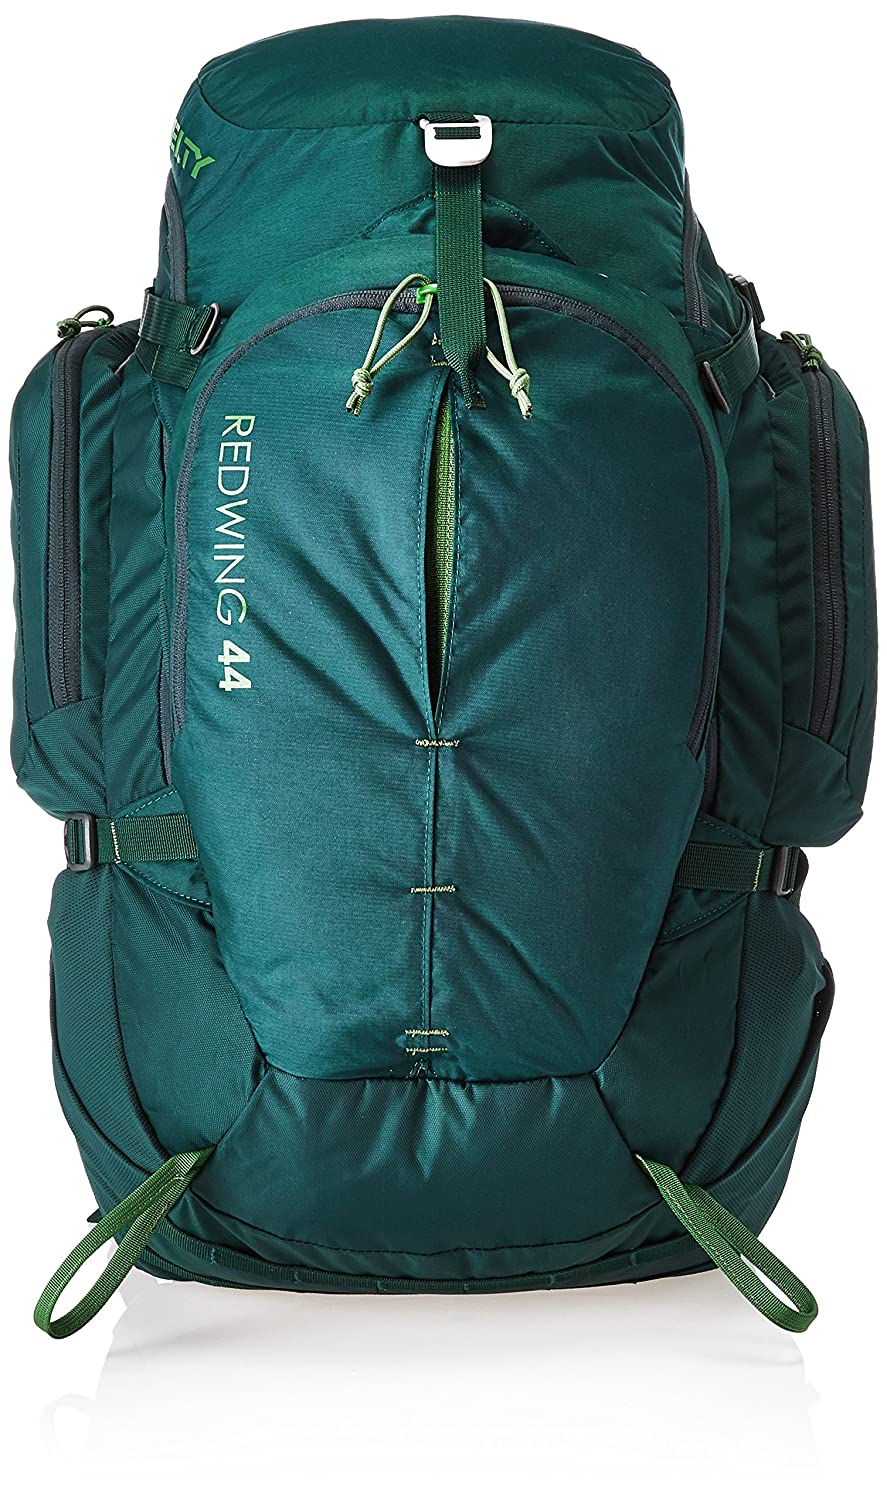 The Kelty Redwing 44 Backpack travel product recommended by Derek Coleman on Lifney.